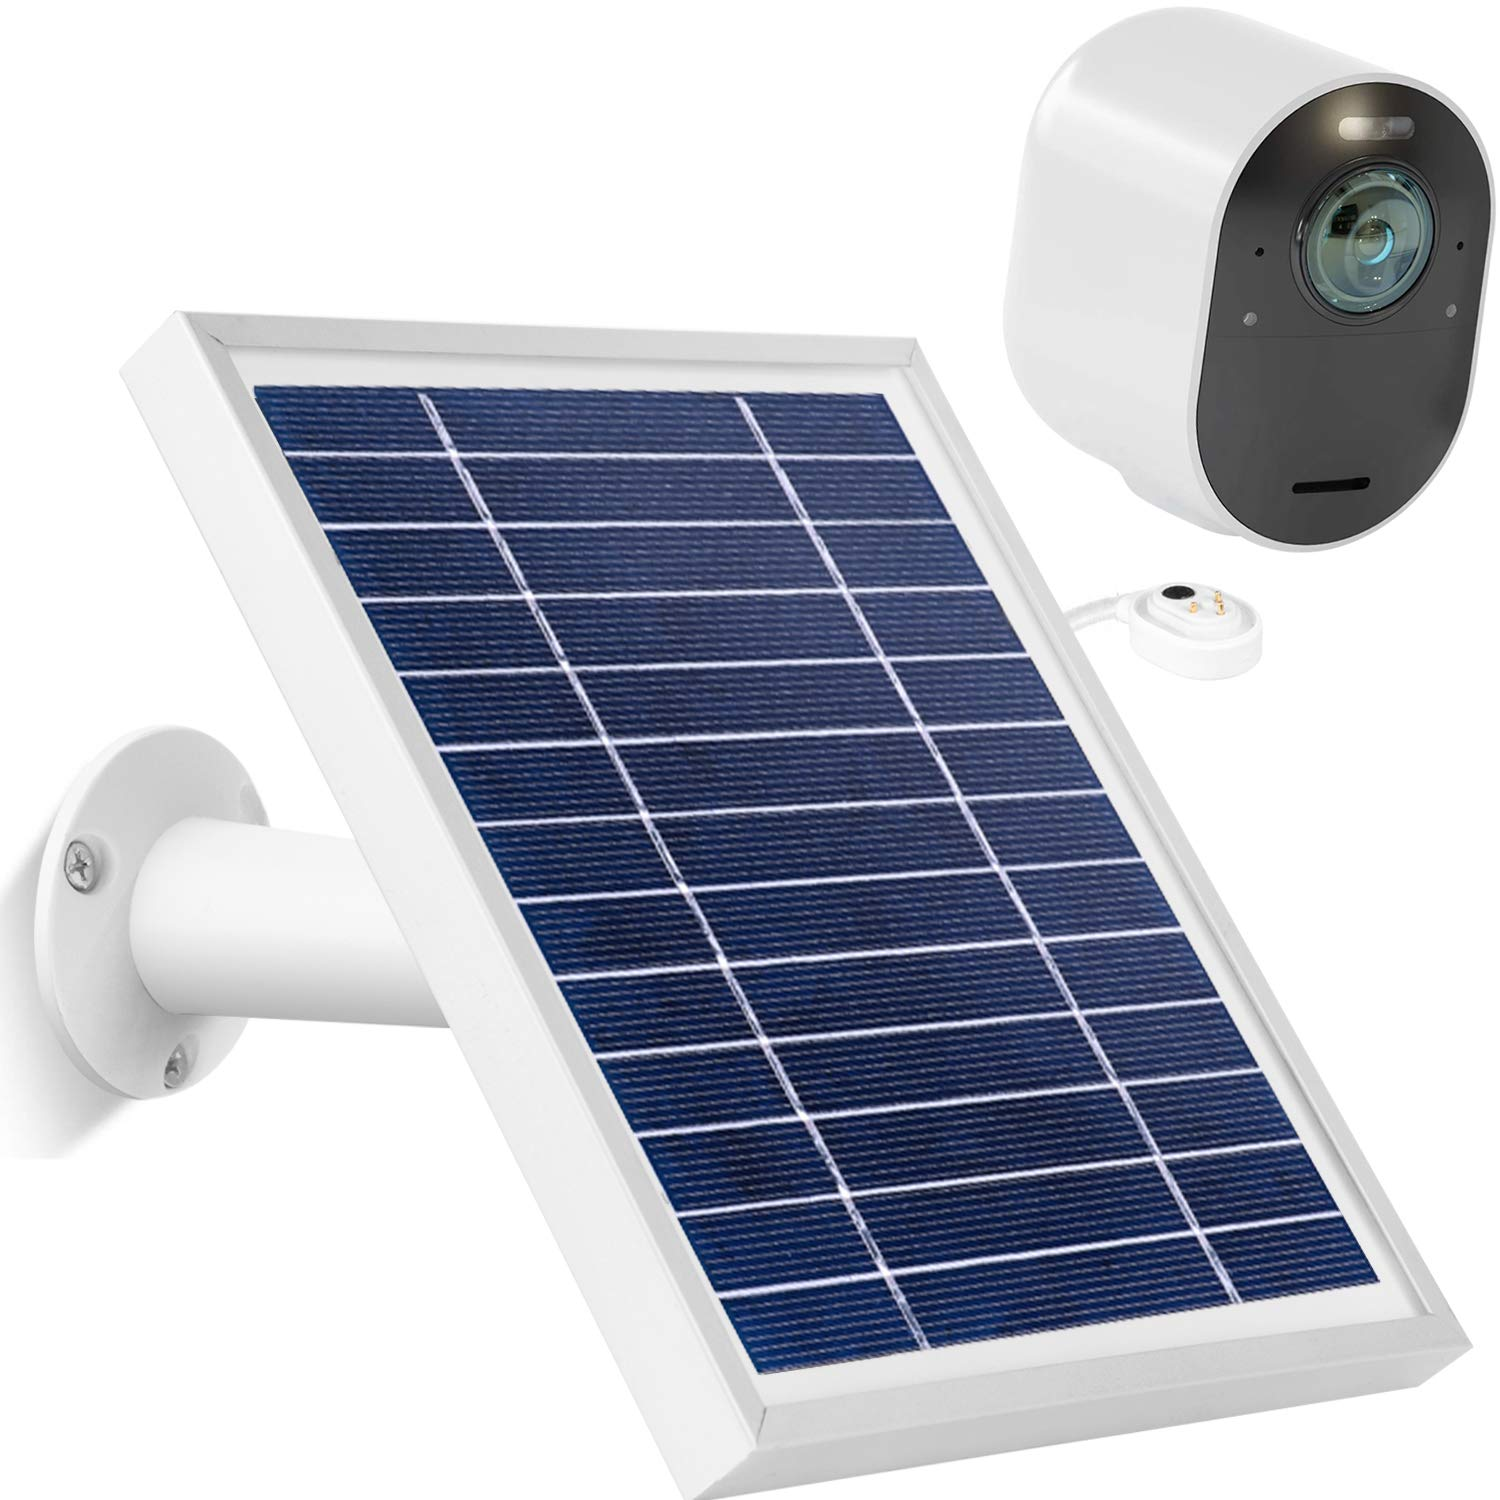 Uogw Solar Panel Charge for Arlo Pro 3 /Arlo Ultra/Ultra 2/Arlo Pro 4, with 11.5ft Waterproof Magnetic Power Cable, Adjustable Mount(Silver)(NOT for Arlo Essential Spotlight)